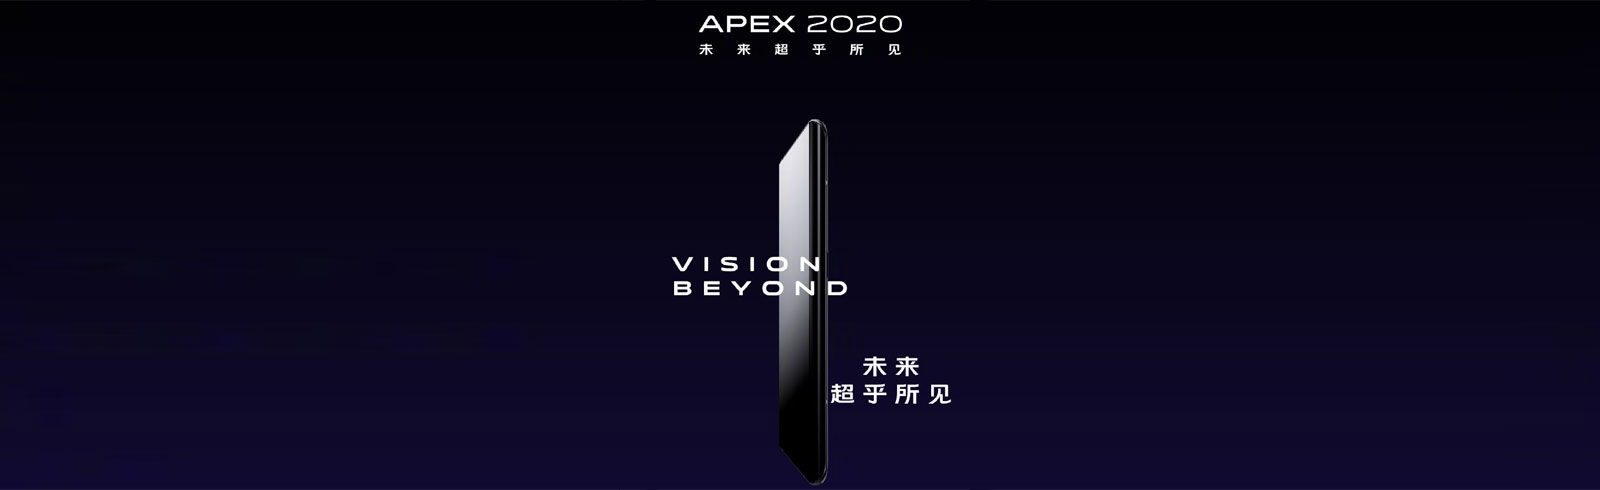 Vivo Apex 2020 specifications and features